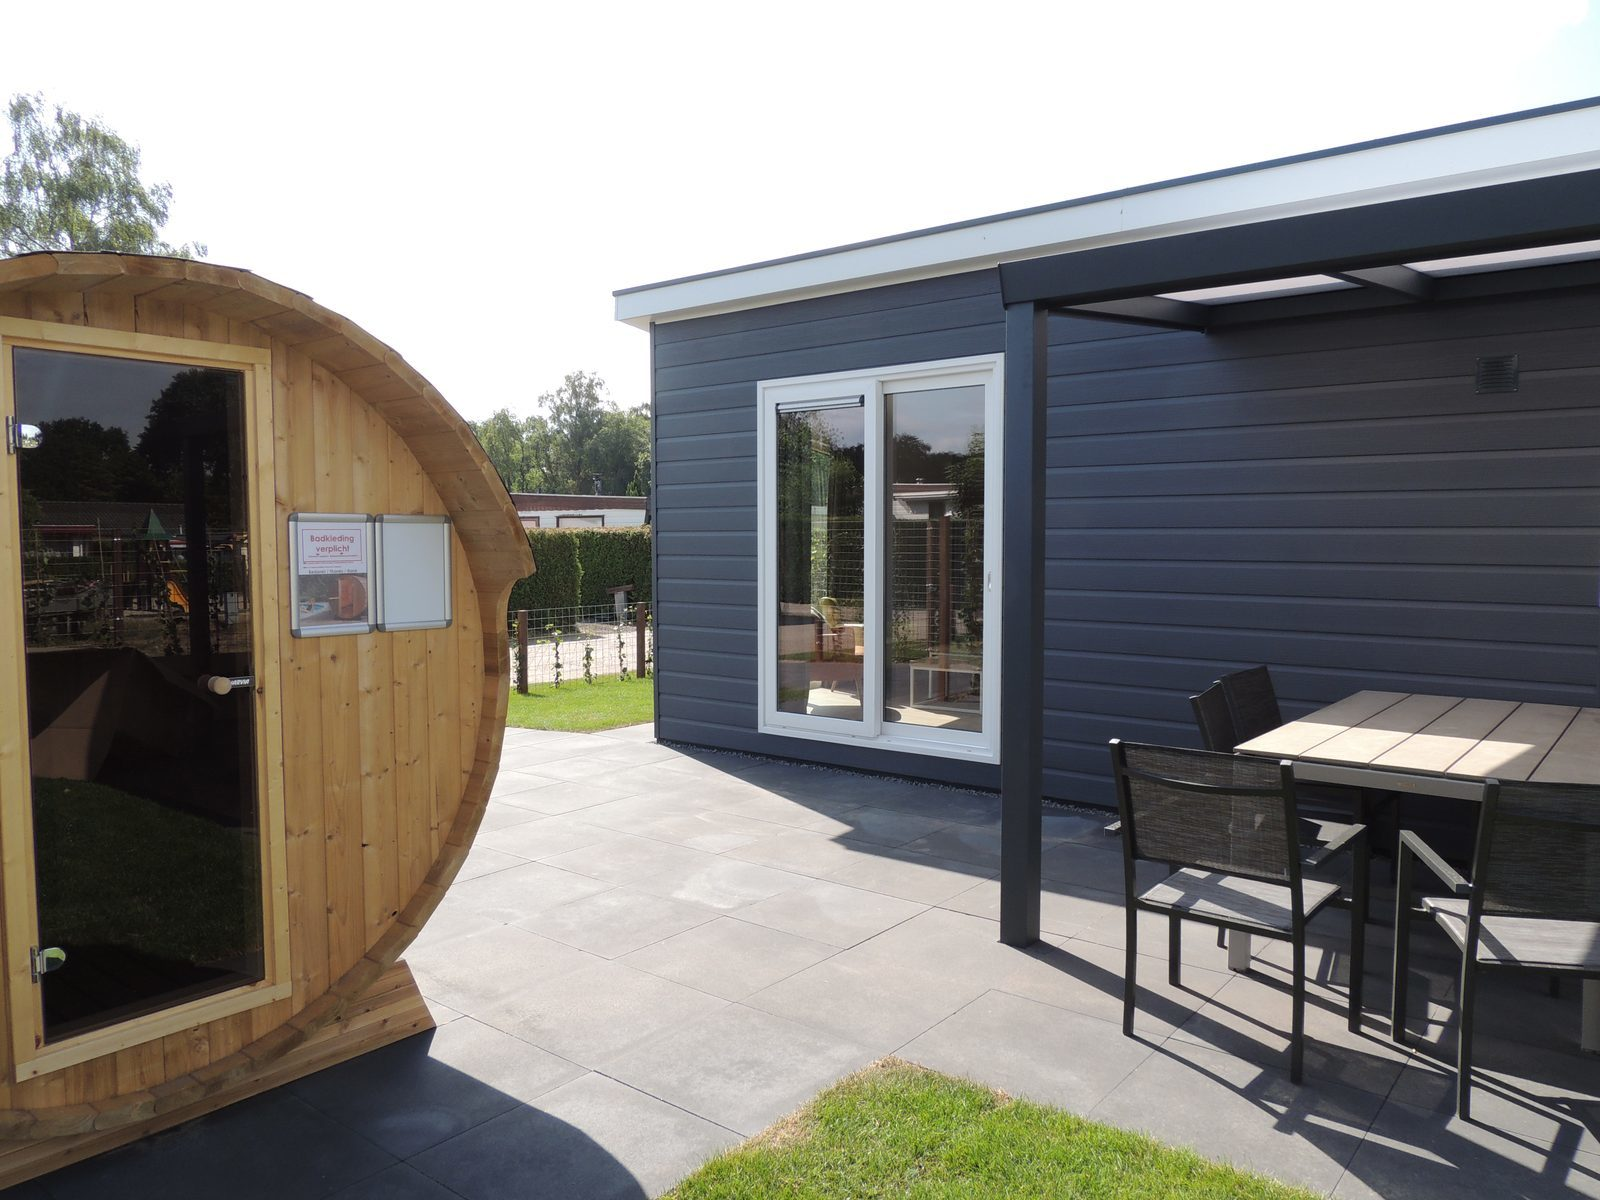 Holiday home with a jacuzzi and sauna